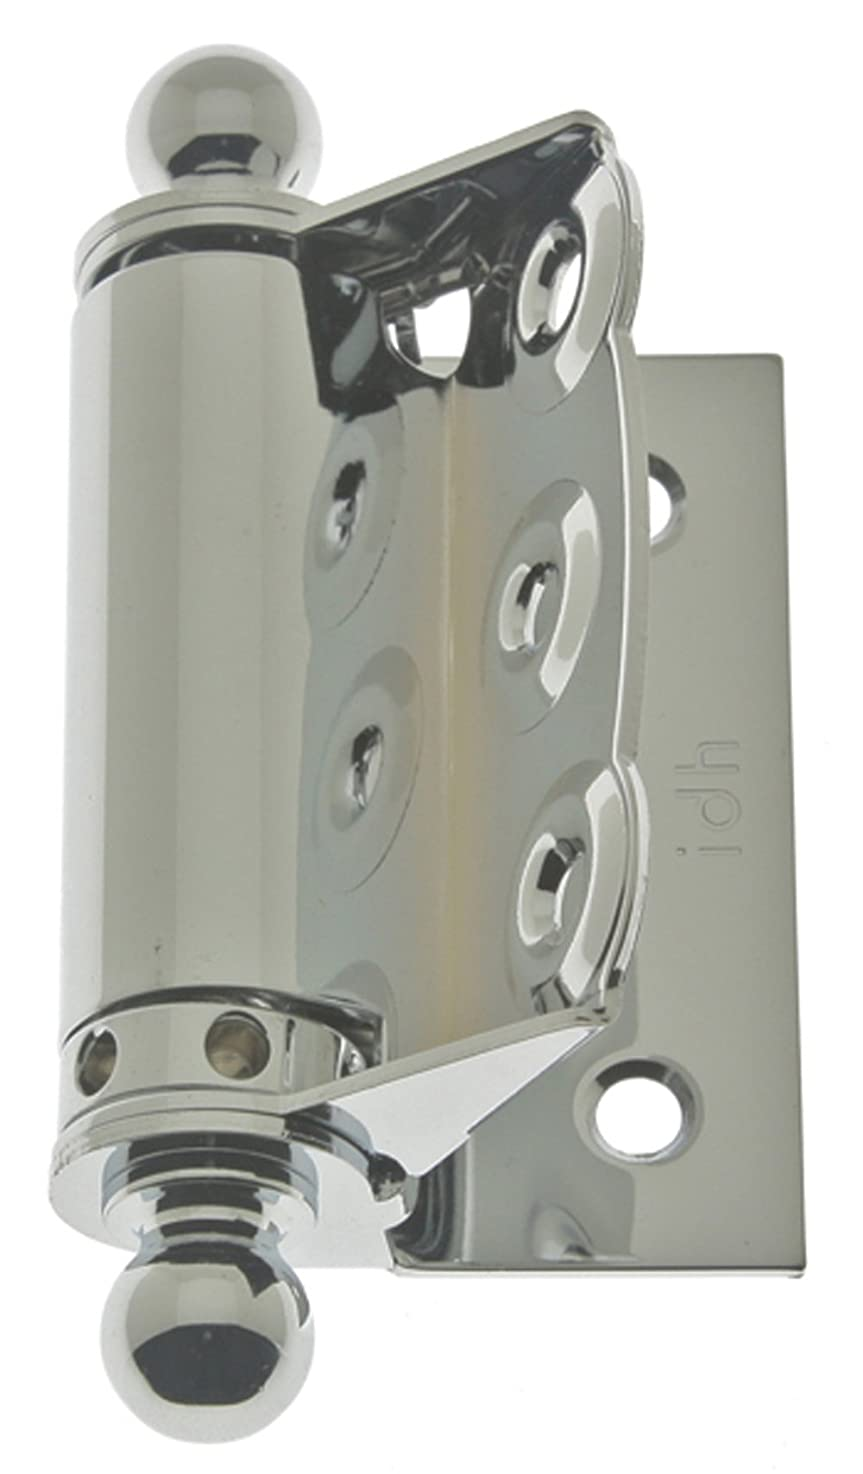 IDHBA 80320-026 Professional Grade Quality Solid Brass Half Surface Adjustable Spring Screen Door Hinges with Ball Finials (Pair), Polished Chrome